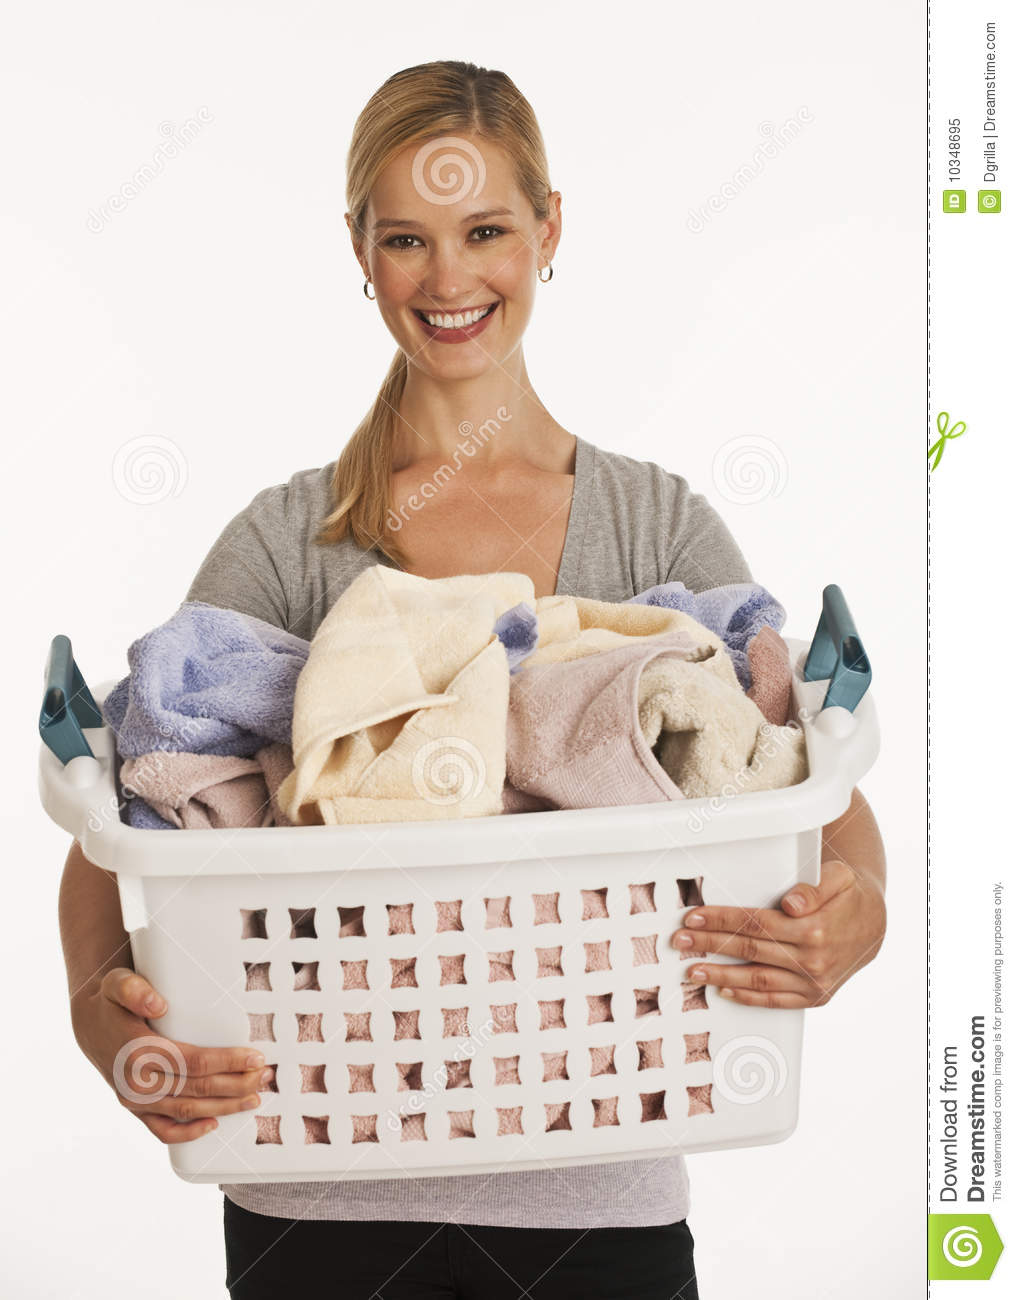 Young Woman Holding Laundry Basket Royalty Free Stock